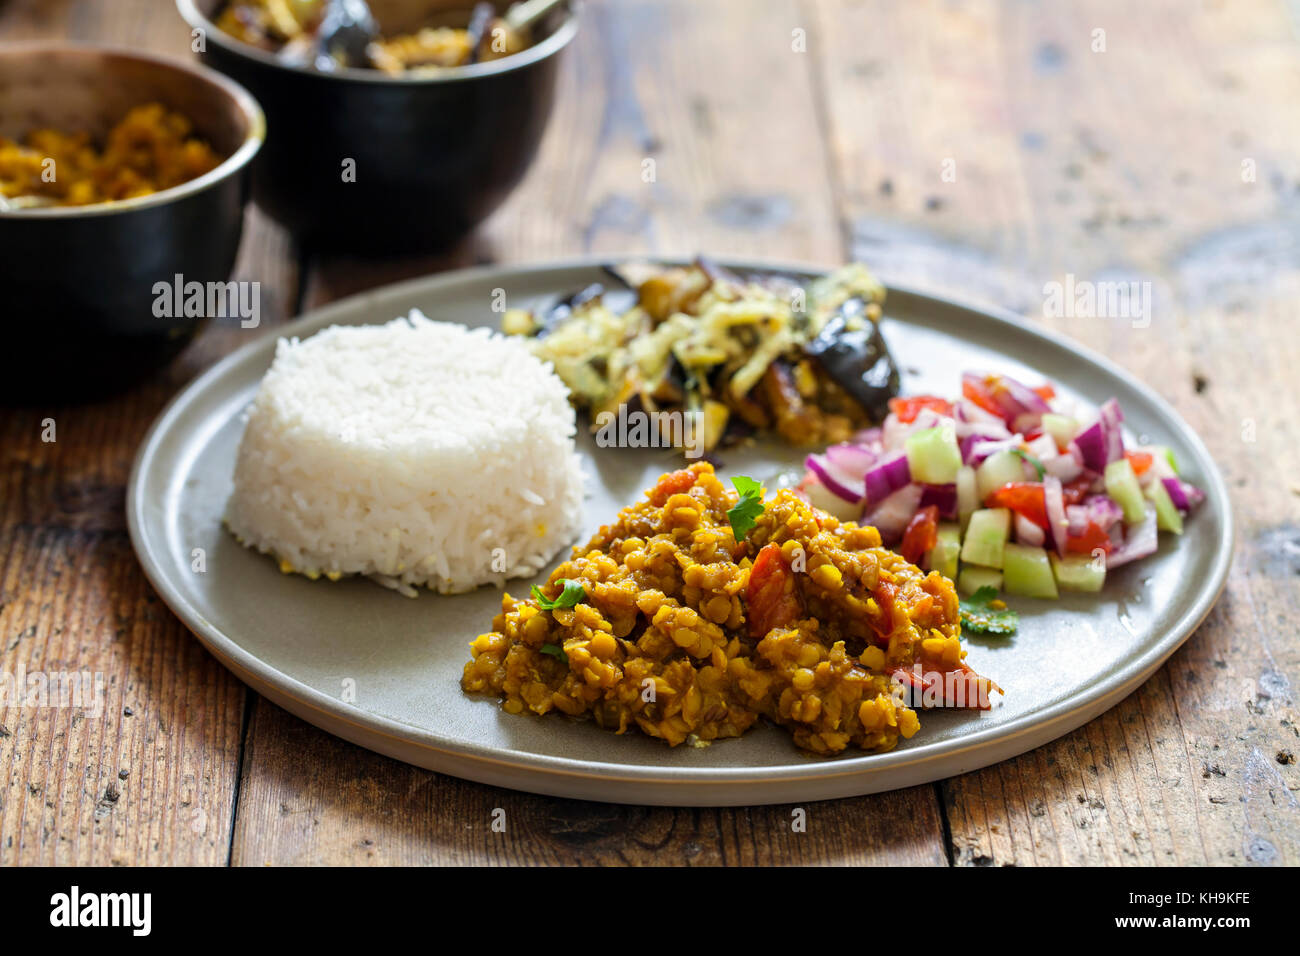 Indian meal with masoor dal - lentil curry, dahi baingan, rice and salad - Stock Image